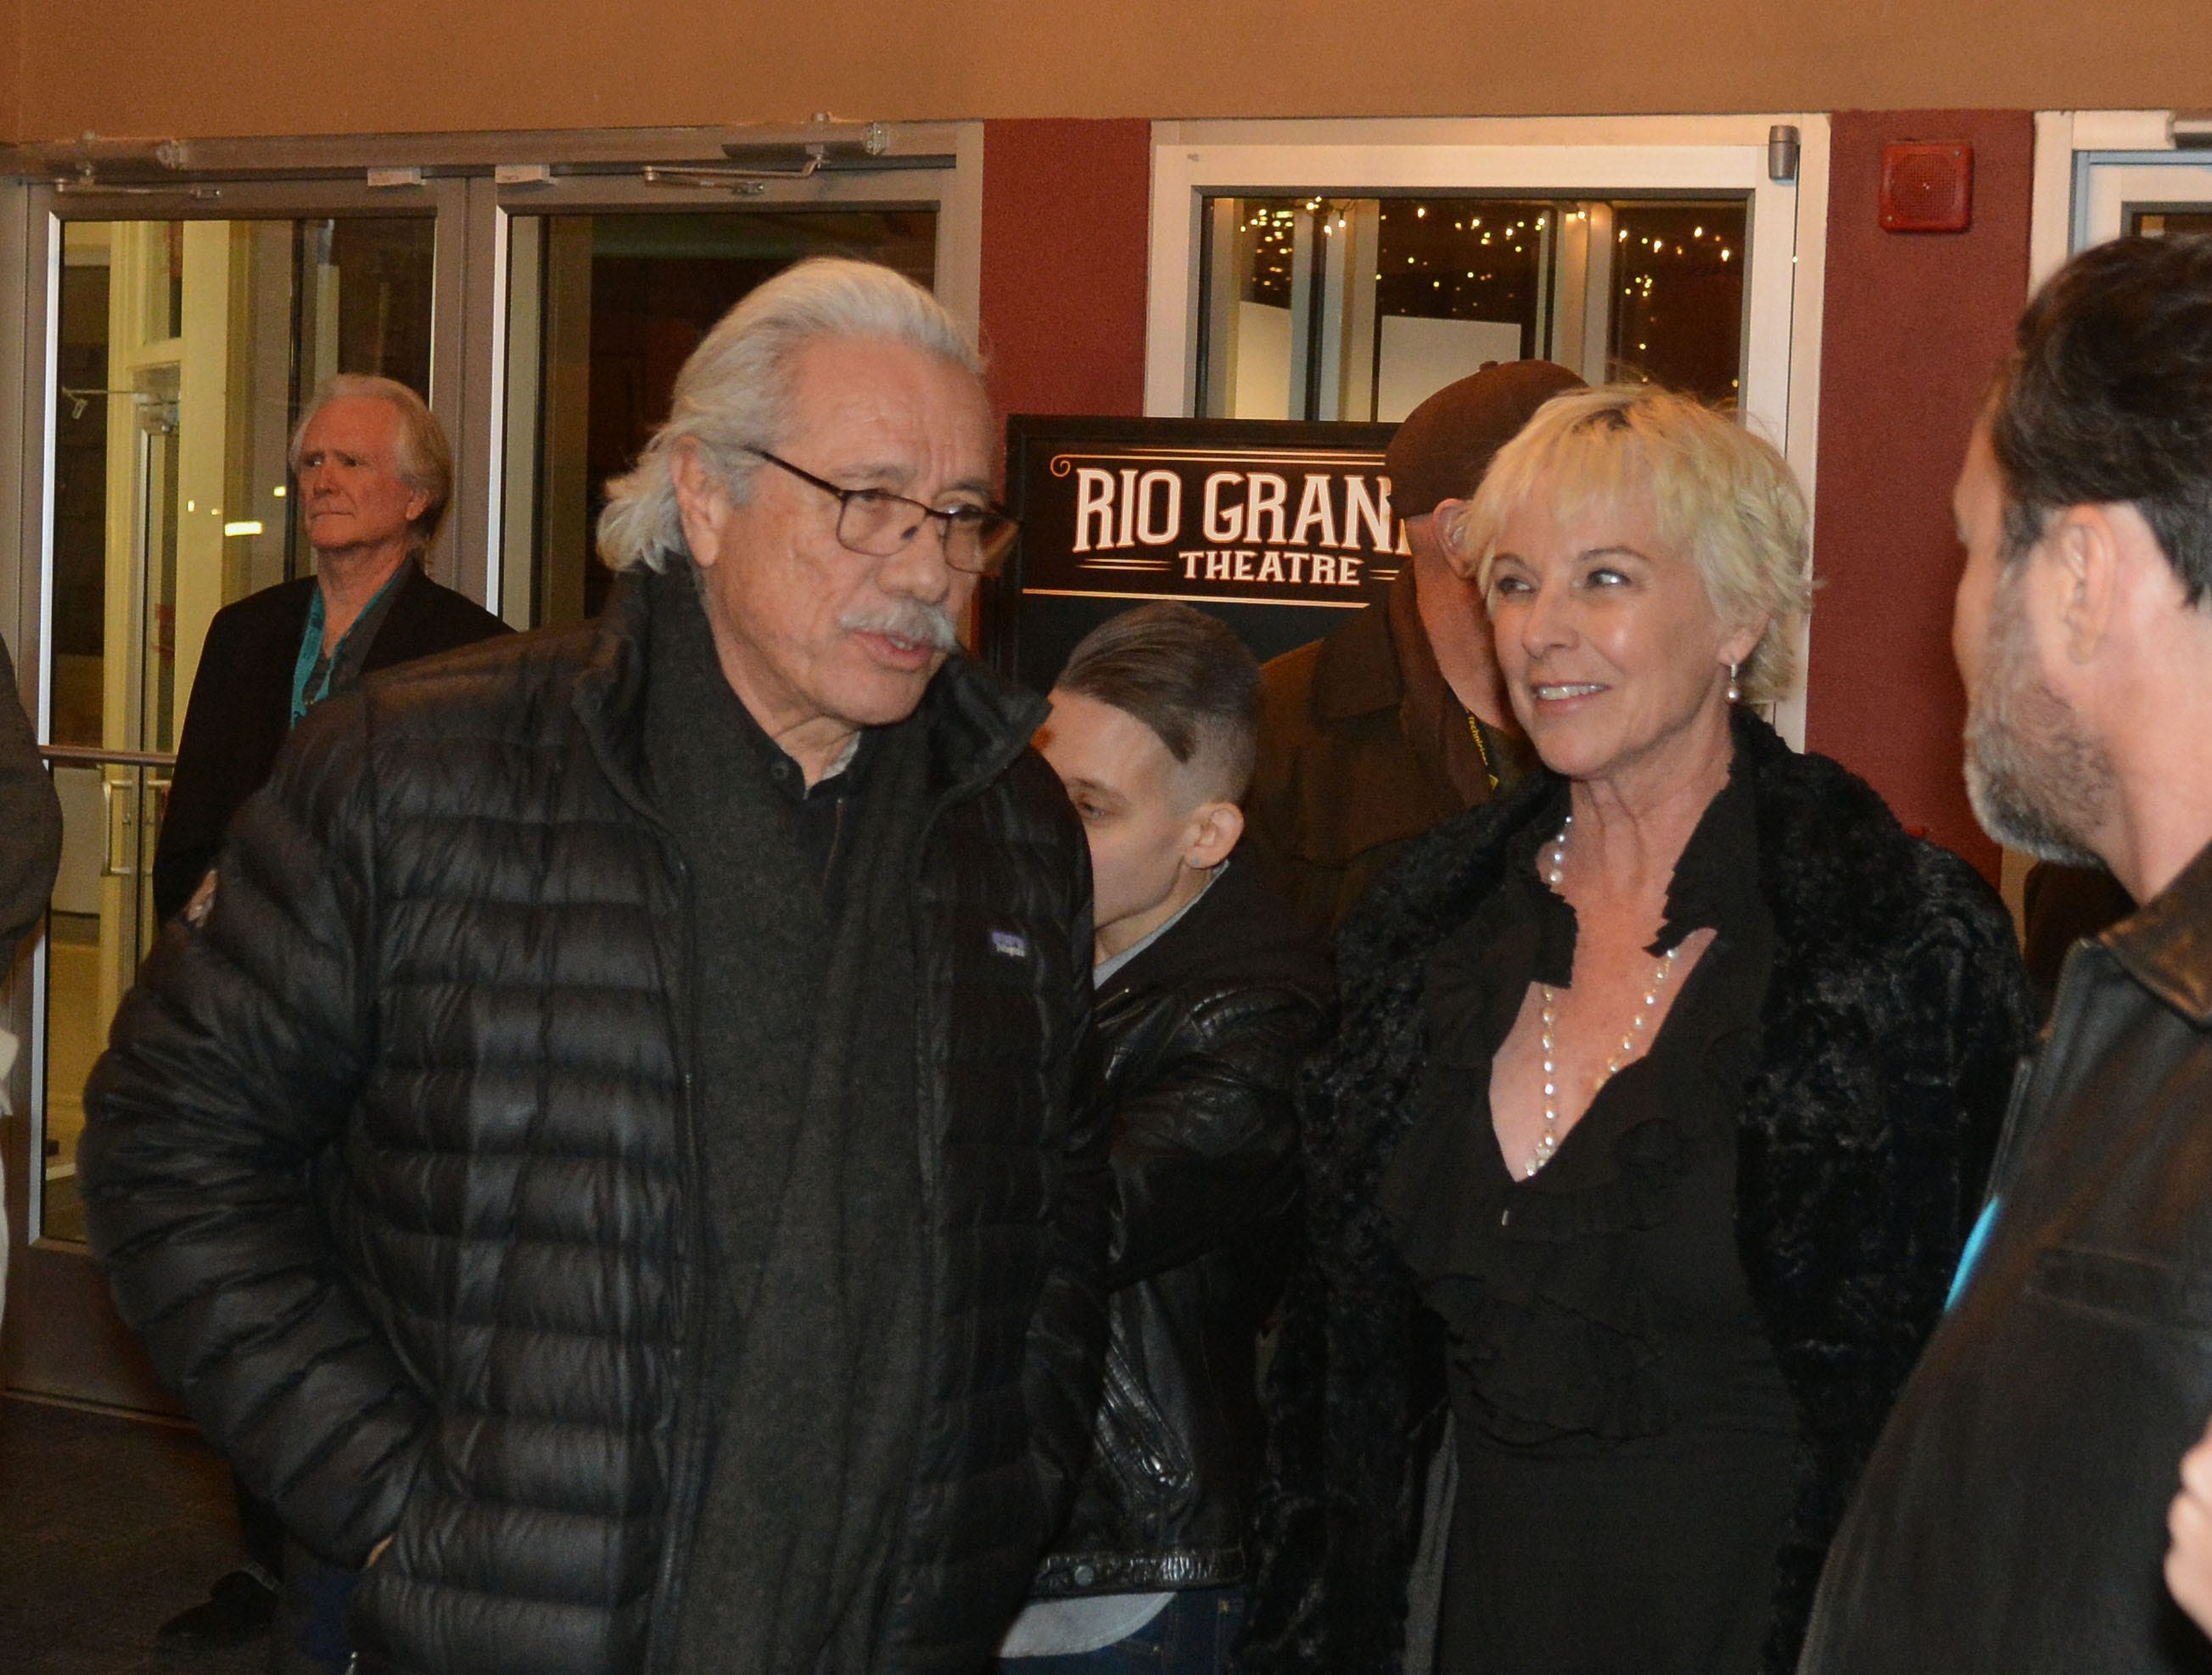 """Edward James Olmos and Kathleen Quinlan arrive at the Rio Grande Theatre for a screening of """"The Ballad of Gregorio Cortez"""" during this year's Las Cruces International Film Festival."""